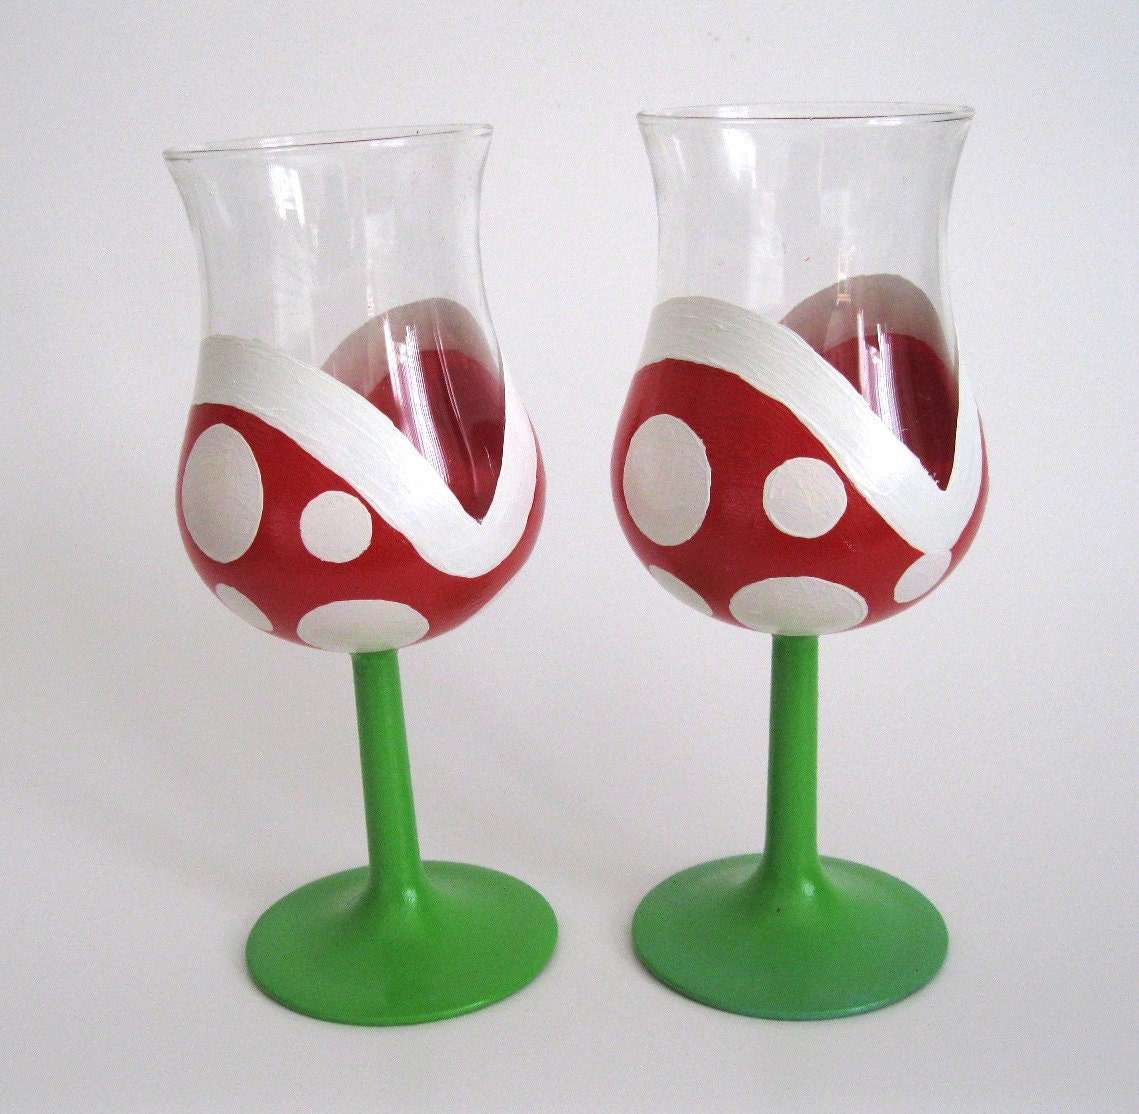 ... Plant Wine ... Hand Painted Wine Glasses Diy